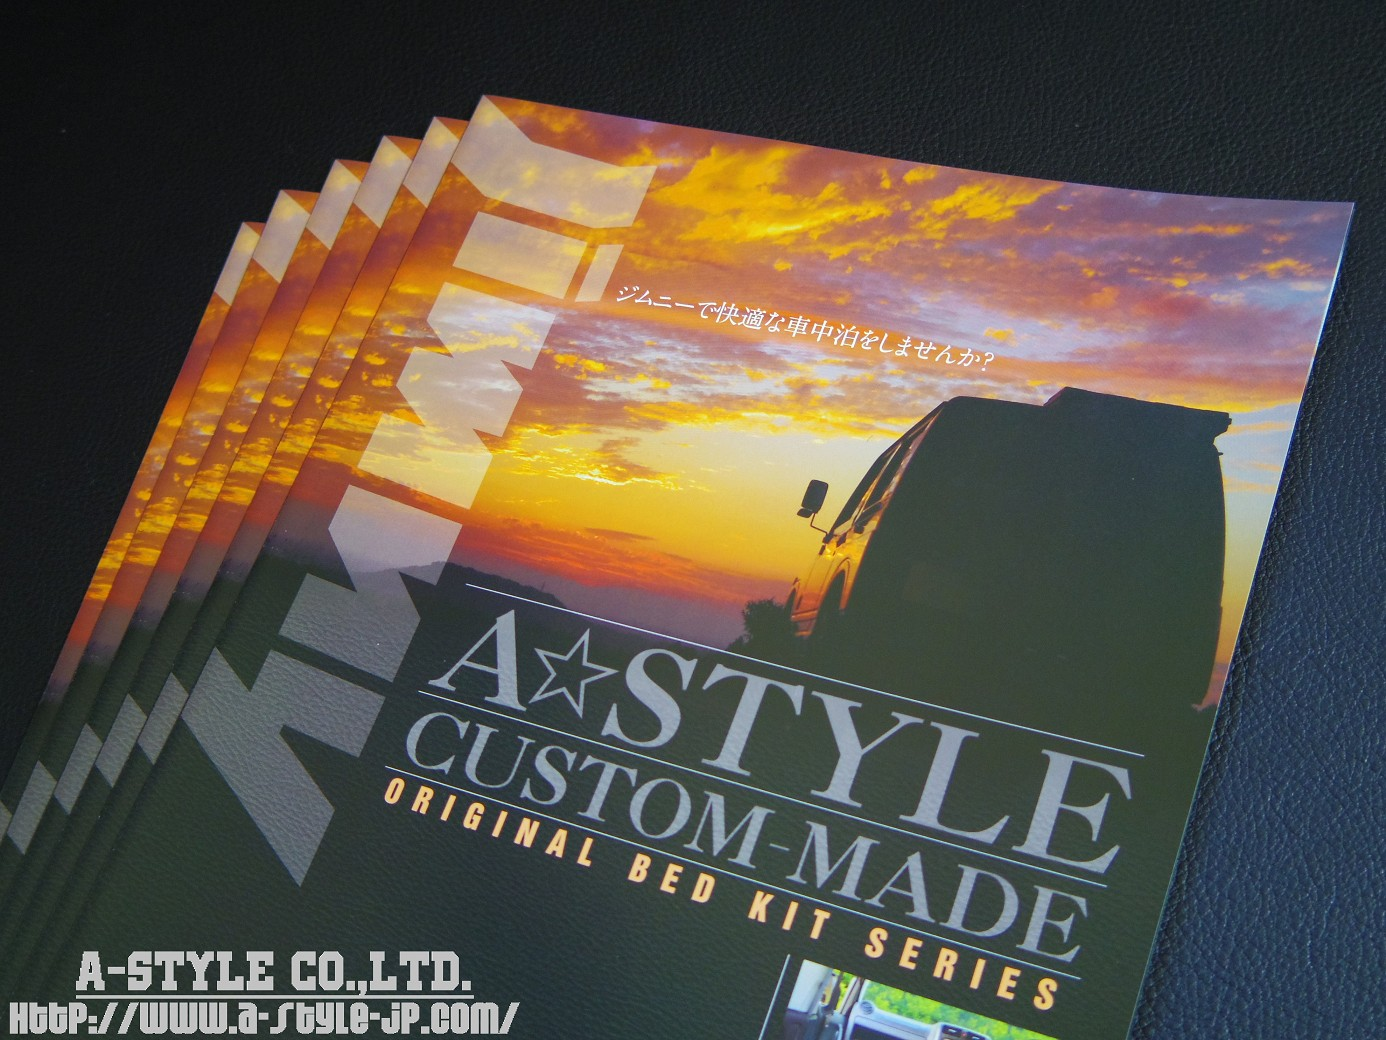 A-STYLE CO.,LTD. ORIGINAL LEAFLET